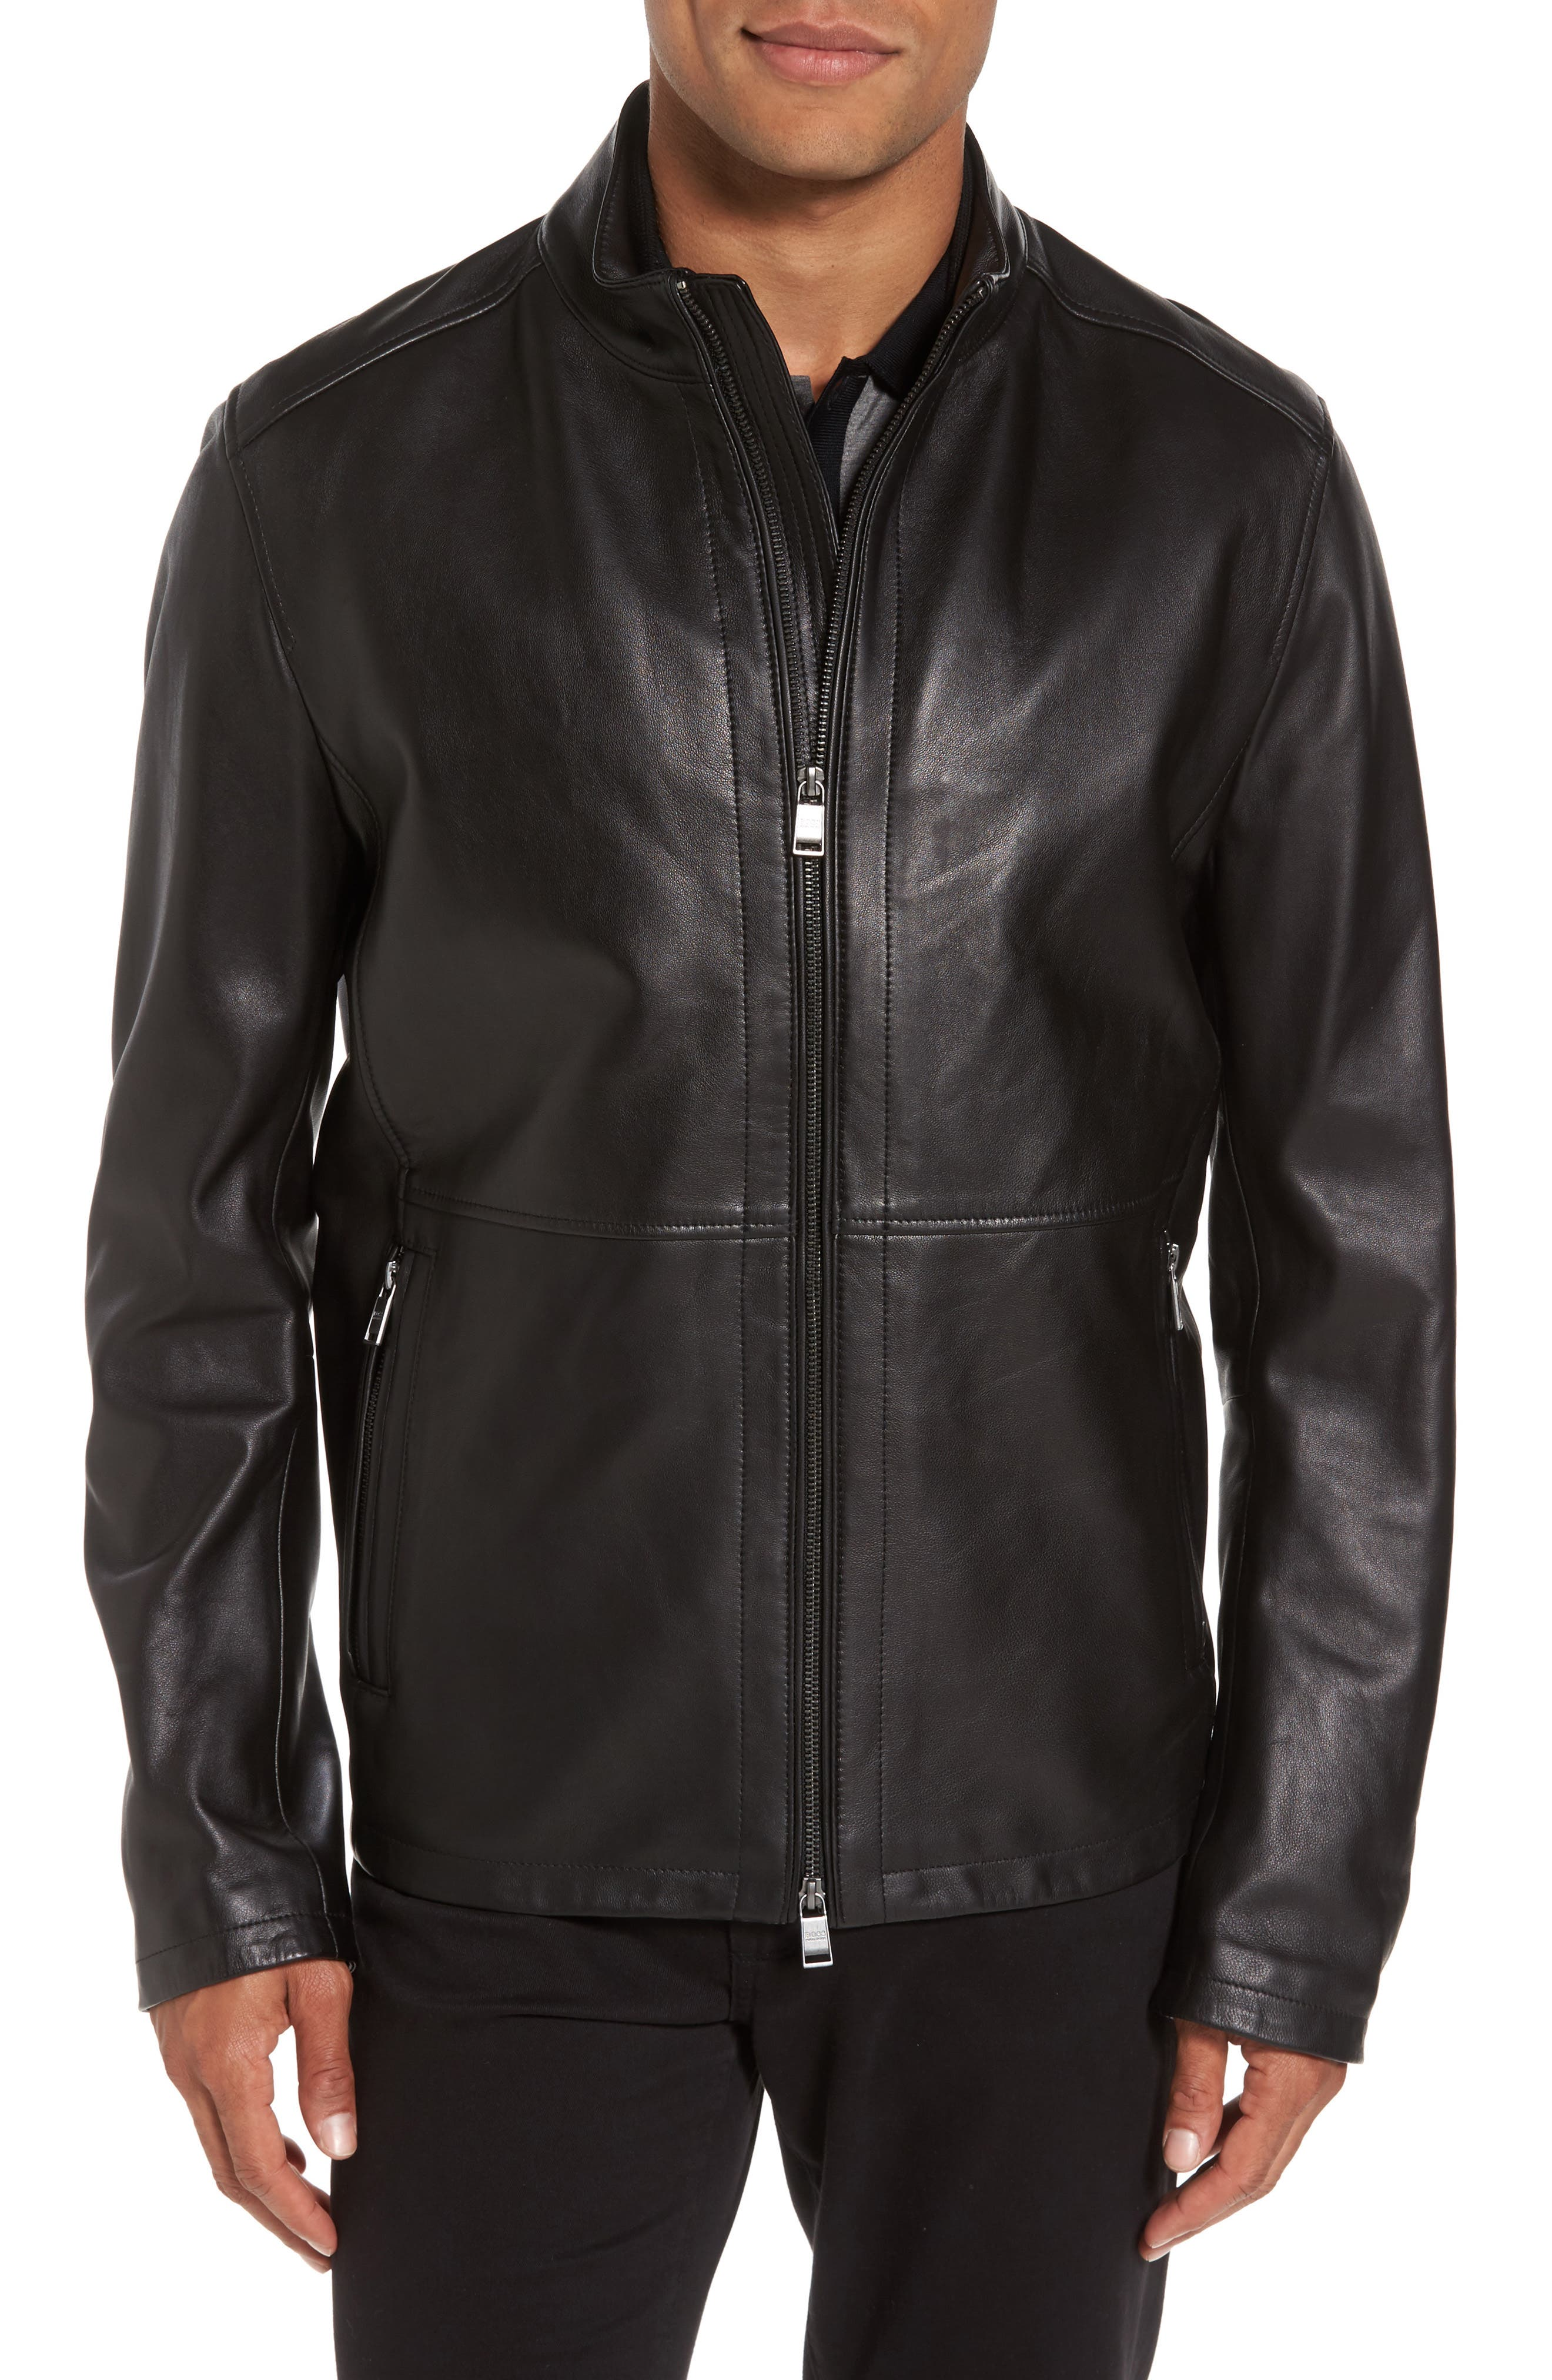 Collar Inset Leather Jacket,                             Main thumbnail 1, color,                             001